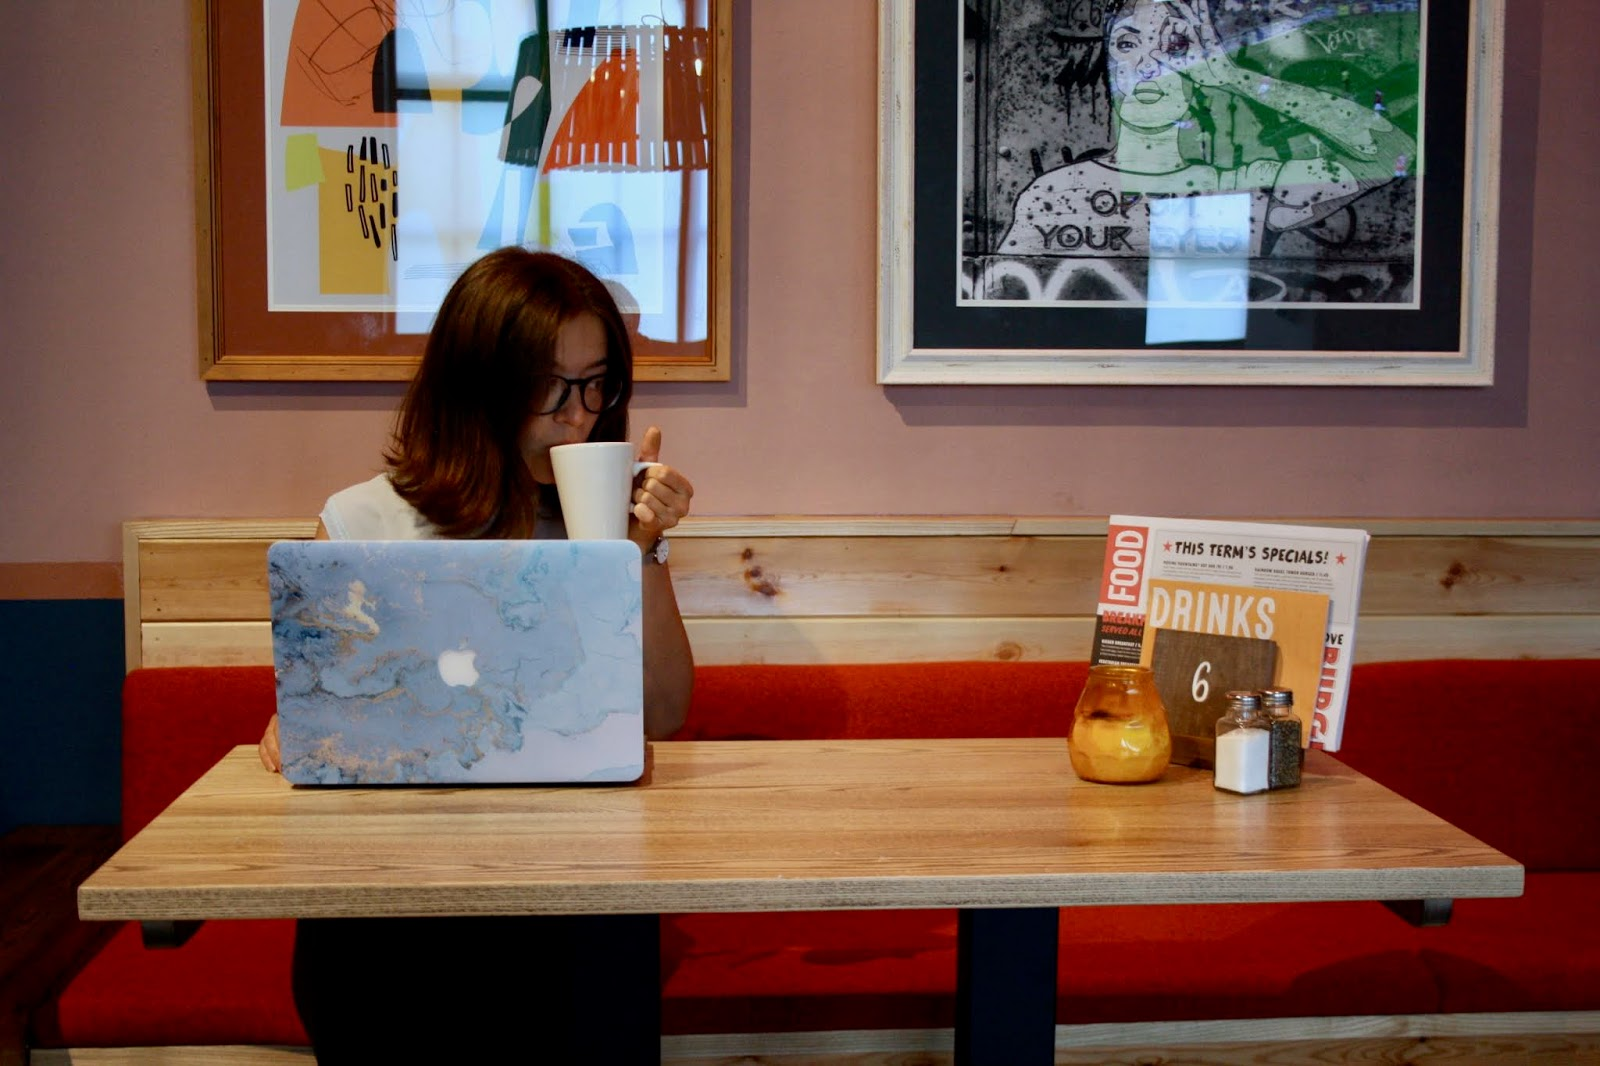 Abbey sits at a table at a cafe with her laptop, sipping from a coffee cup